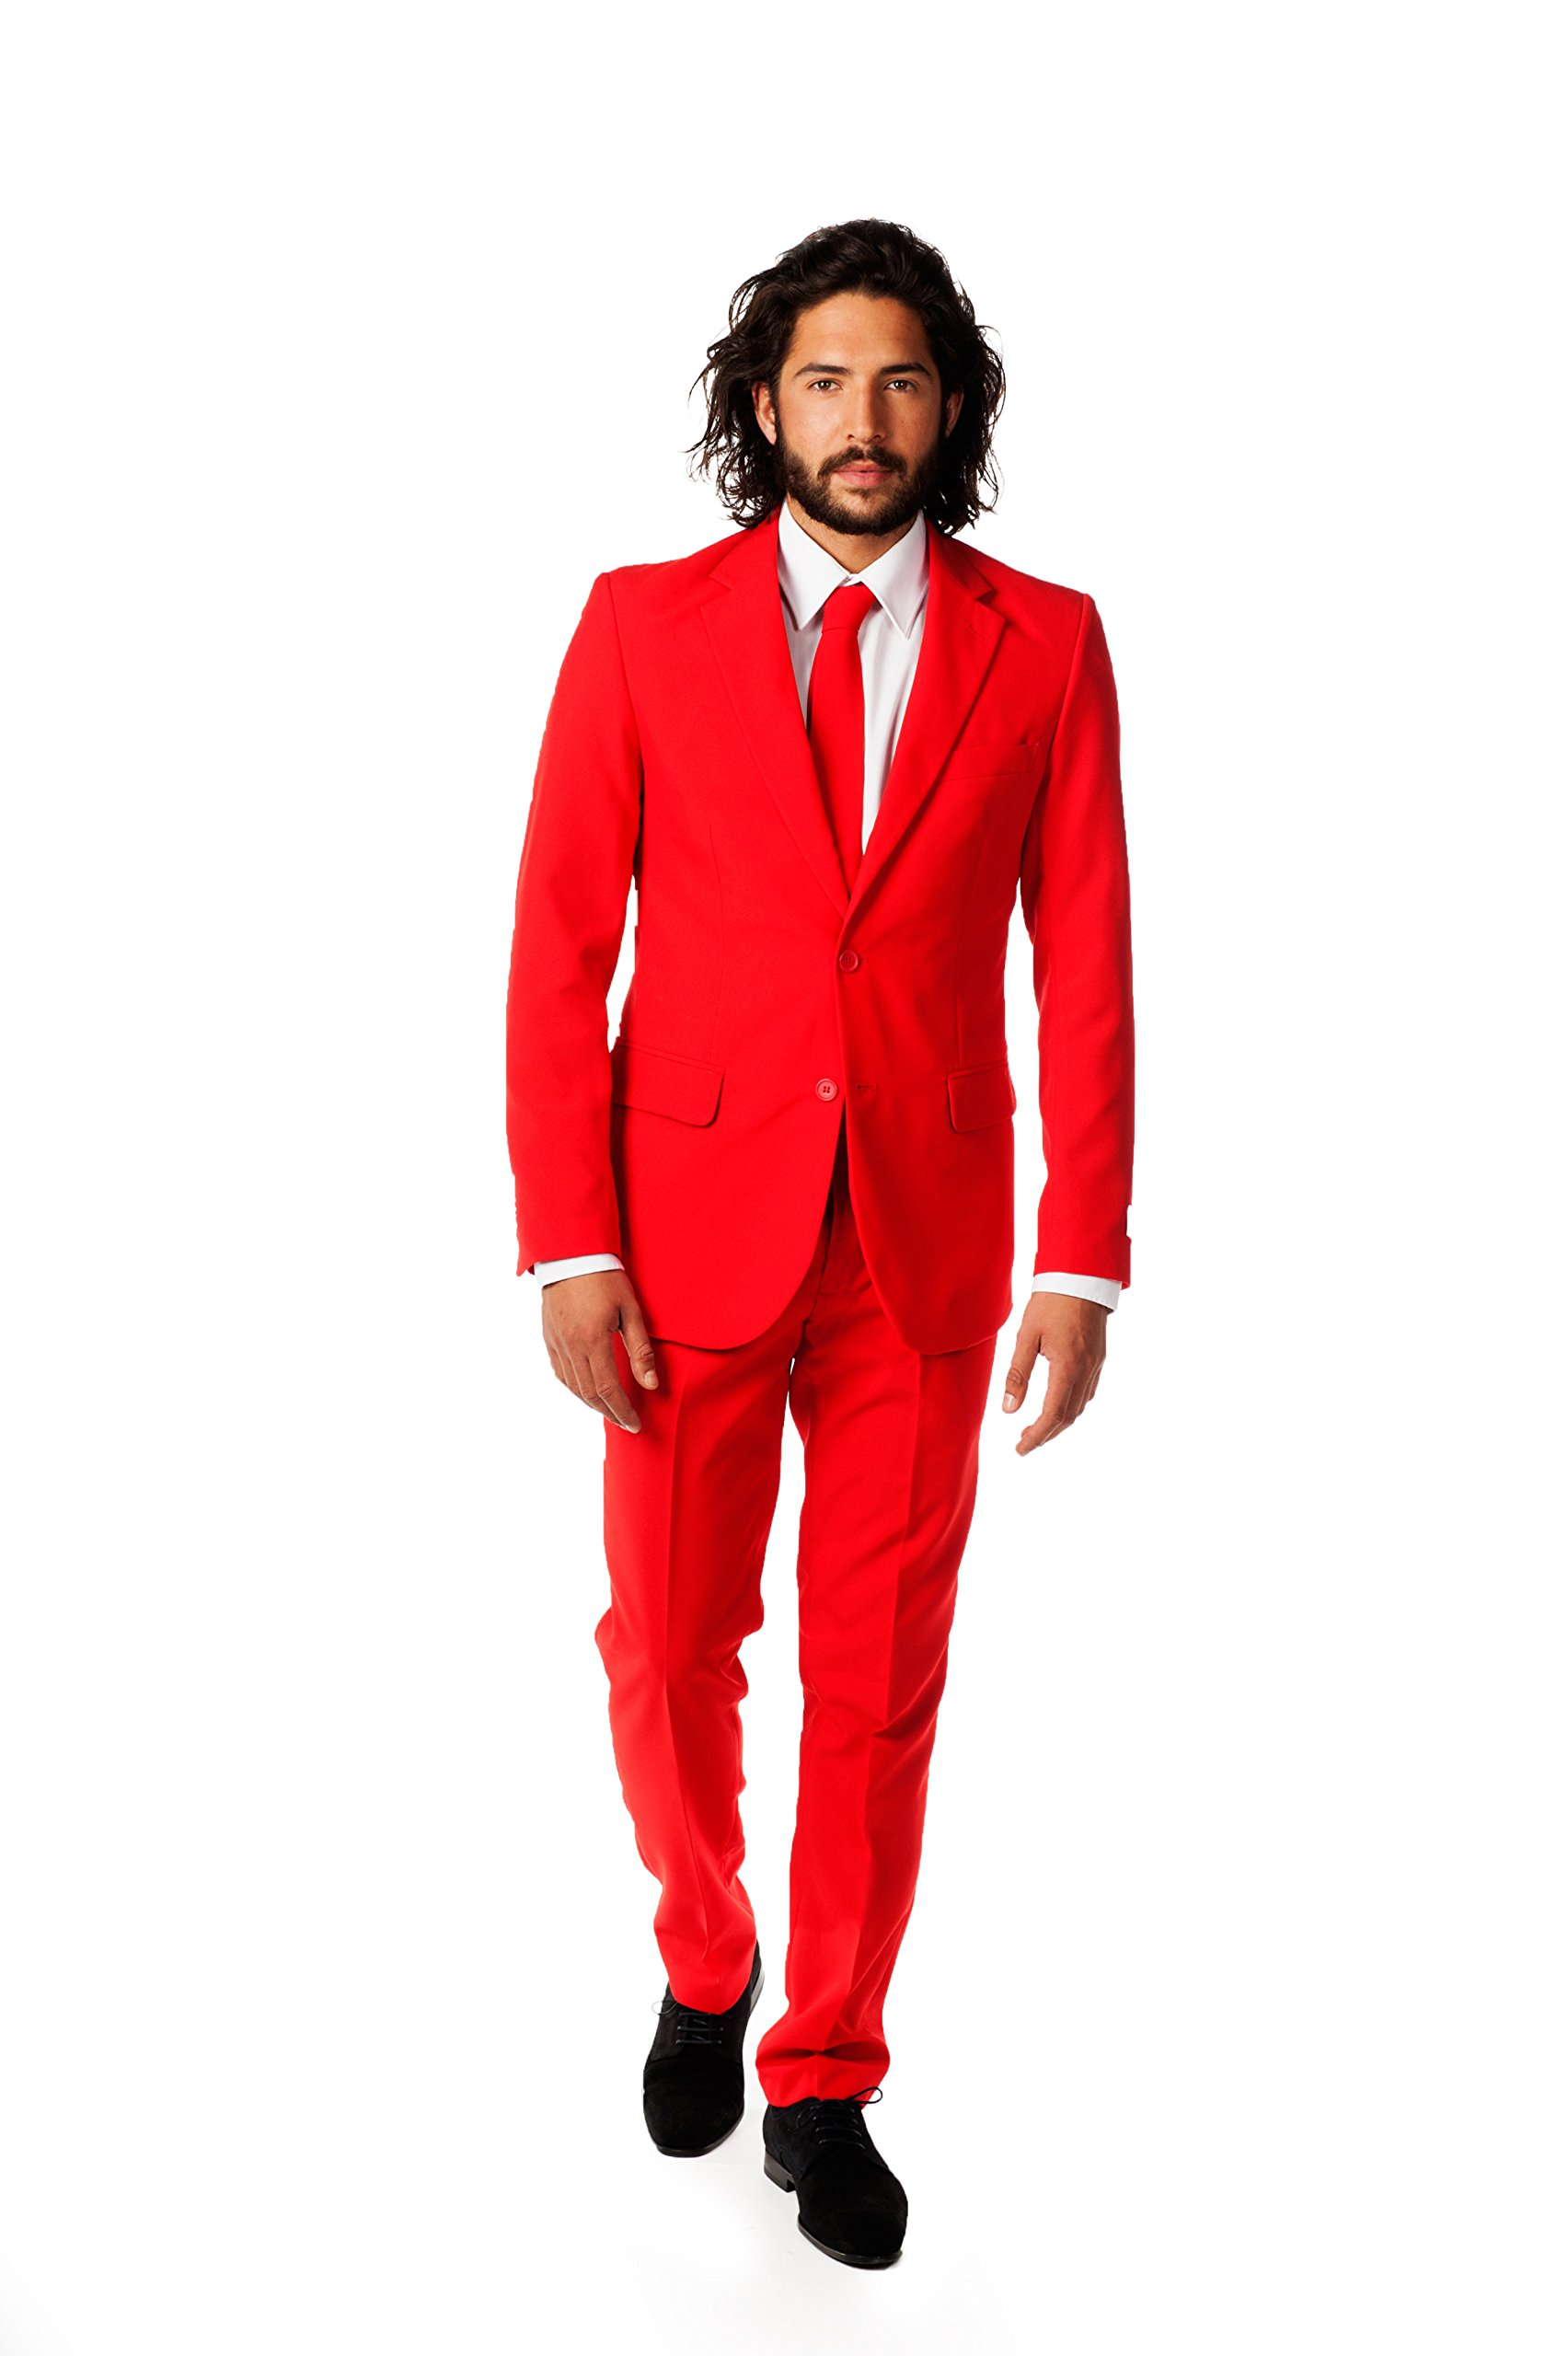 OppoSuits Men's Red Devil Party Costume Suit, Red, 36 by Opposuits